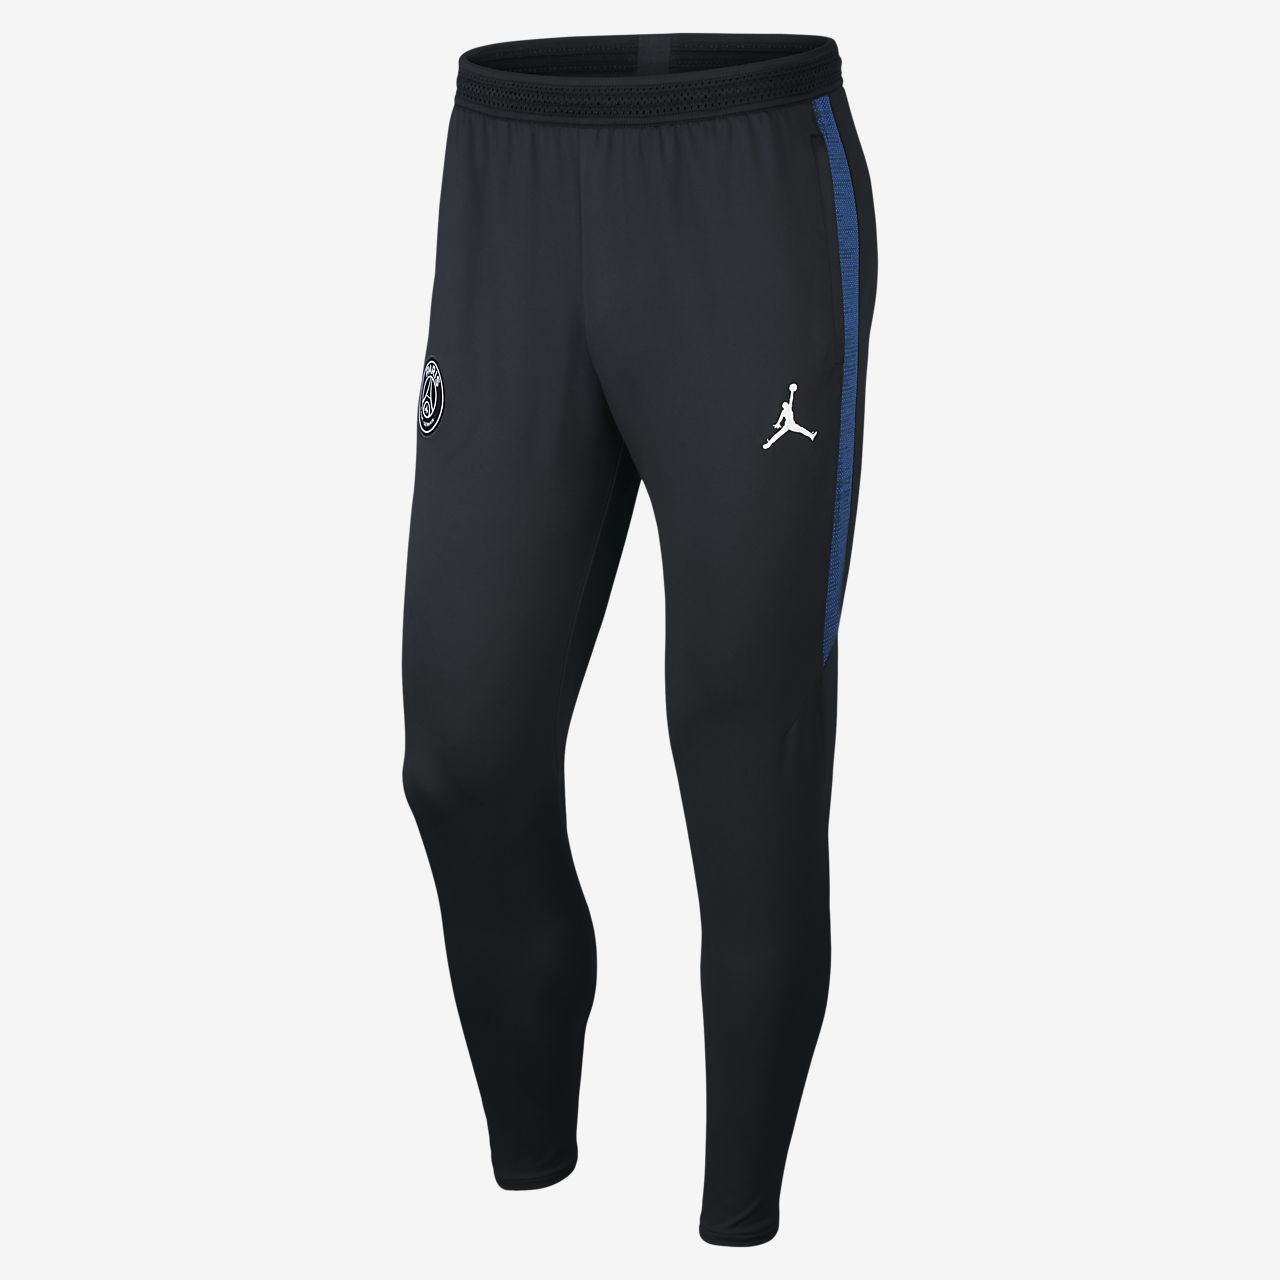 Pantaloni da calcio Jordan x Paris Saint-Germain Strike - Uomo